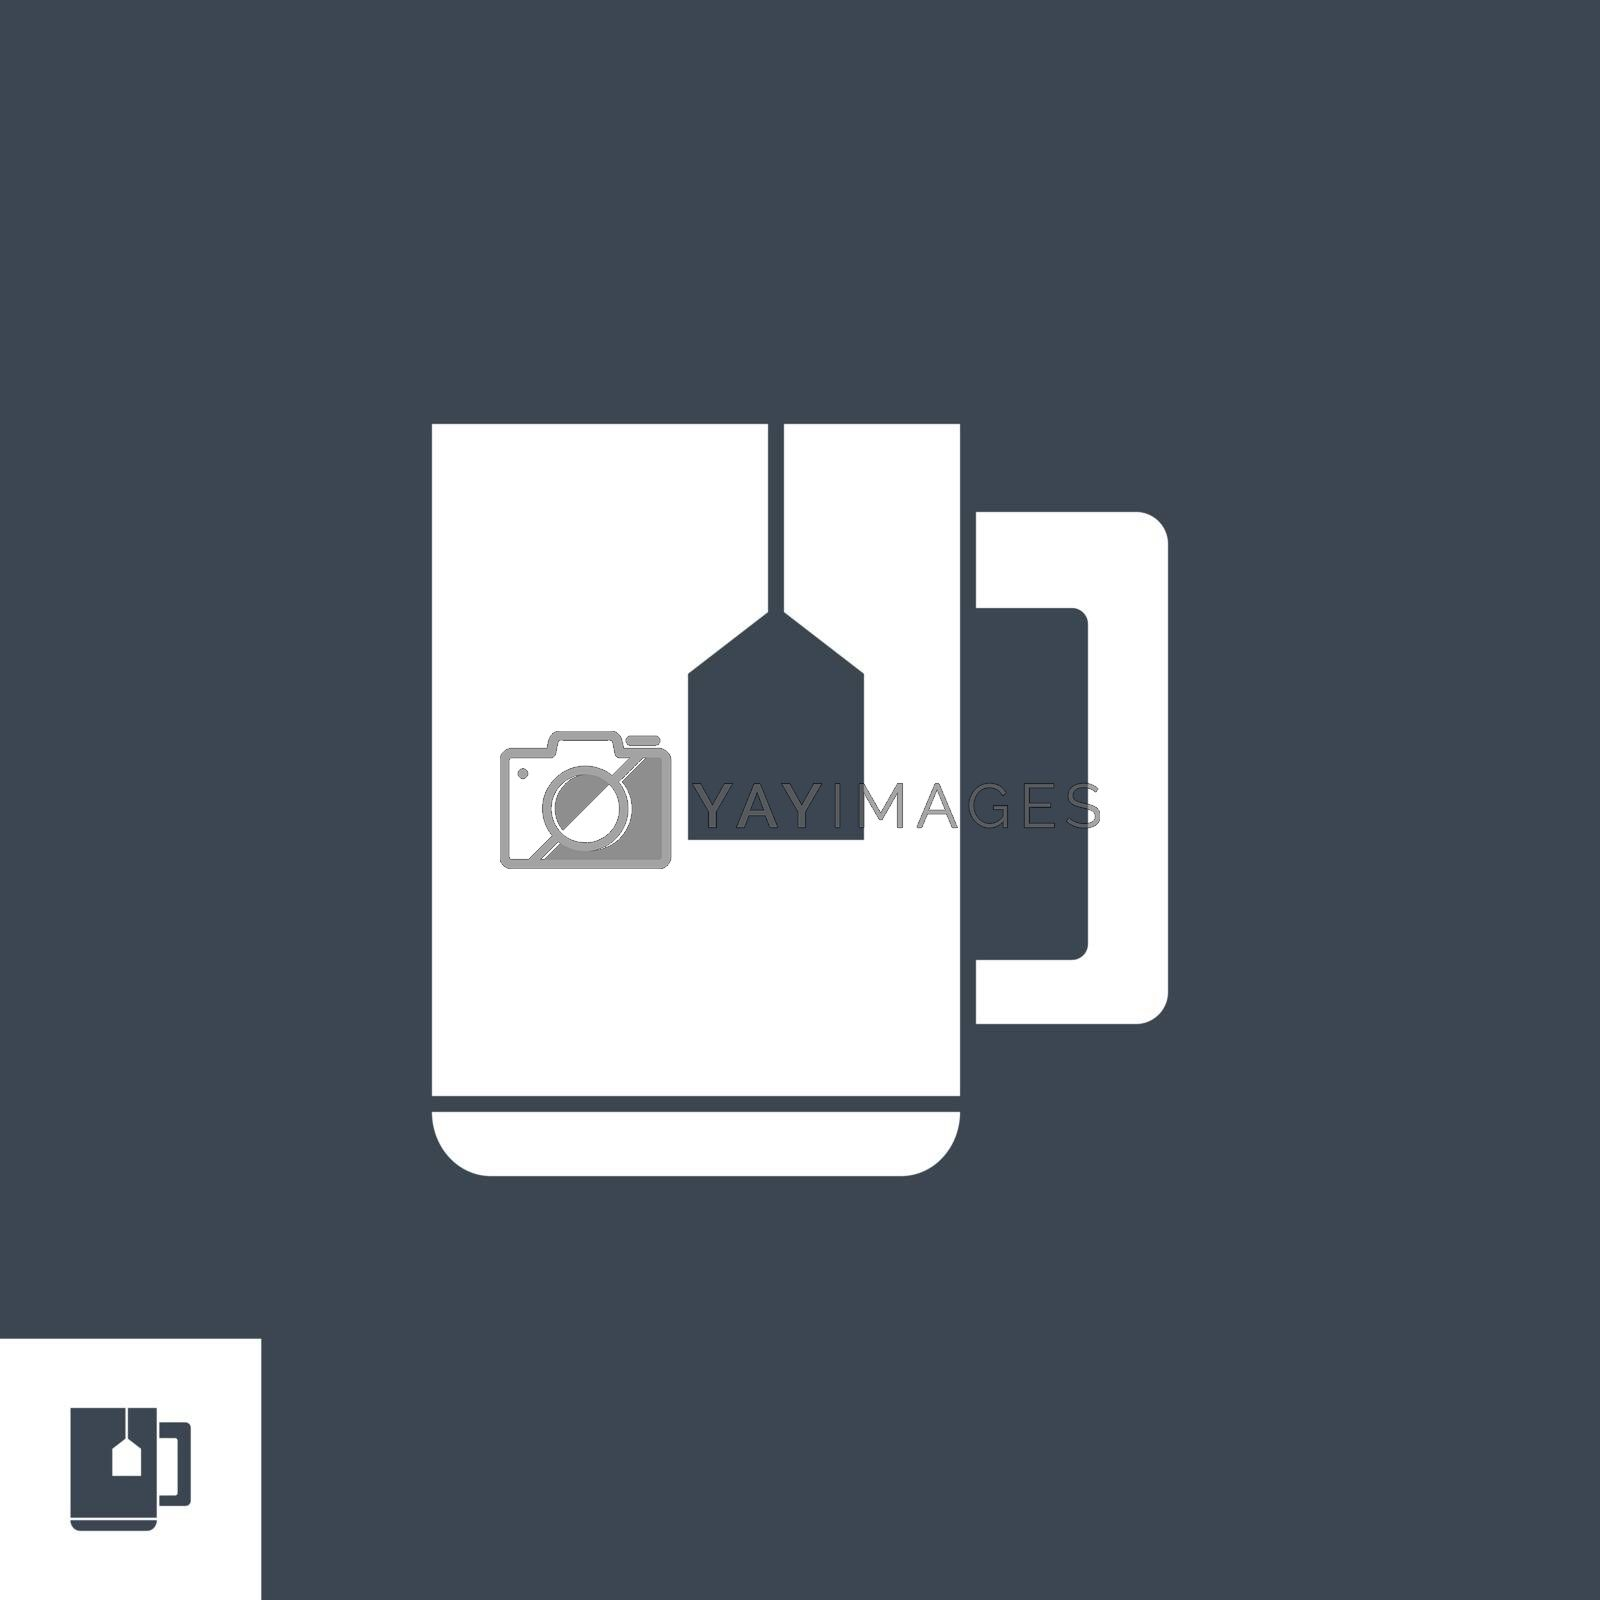 Cup of Tea related vector glyph icon. Isolated on black background. Vector illustration.